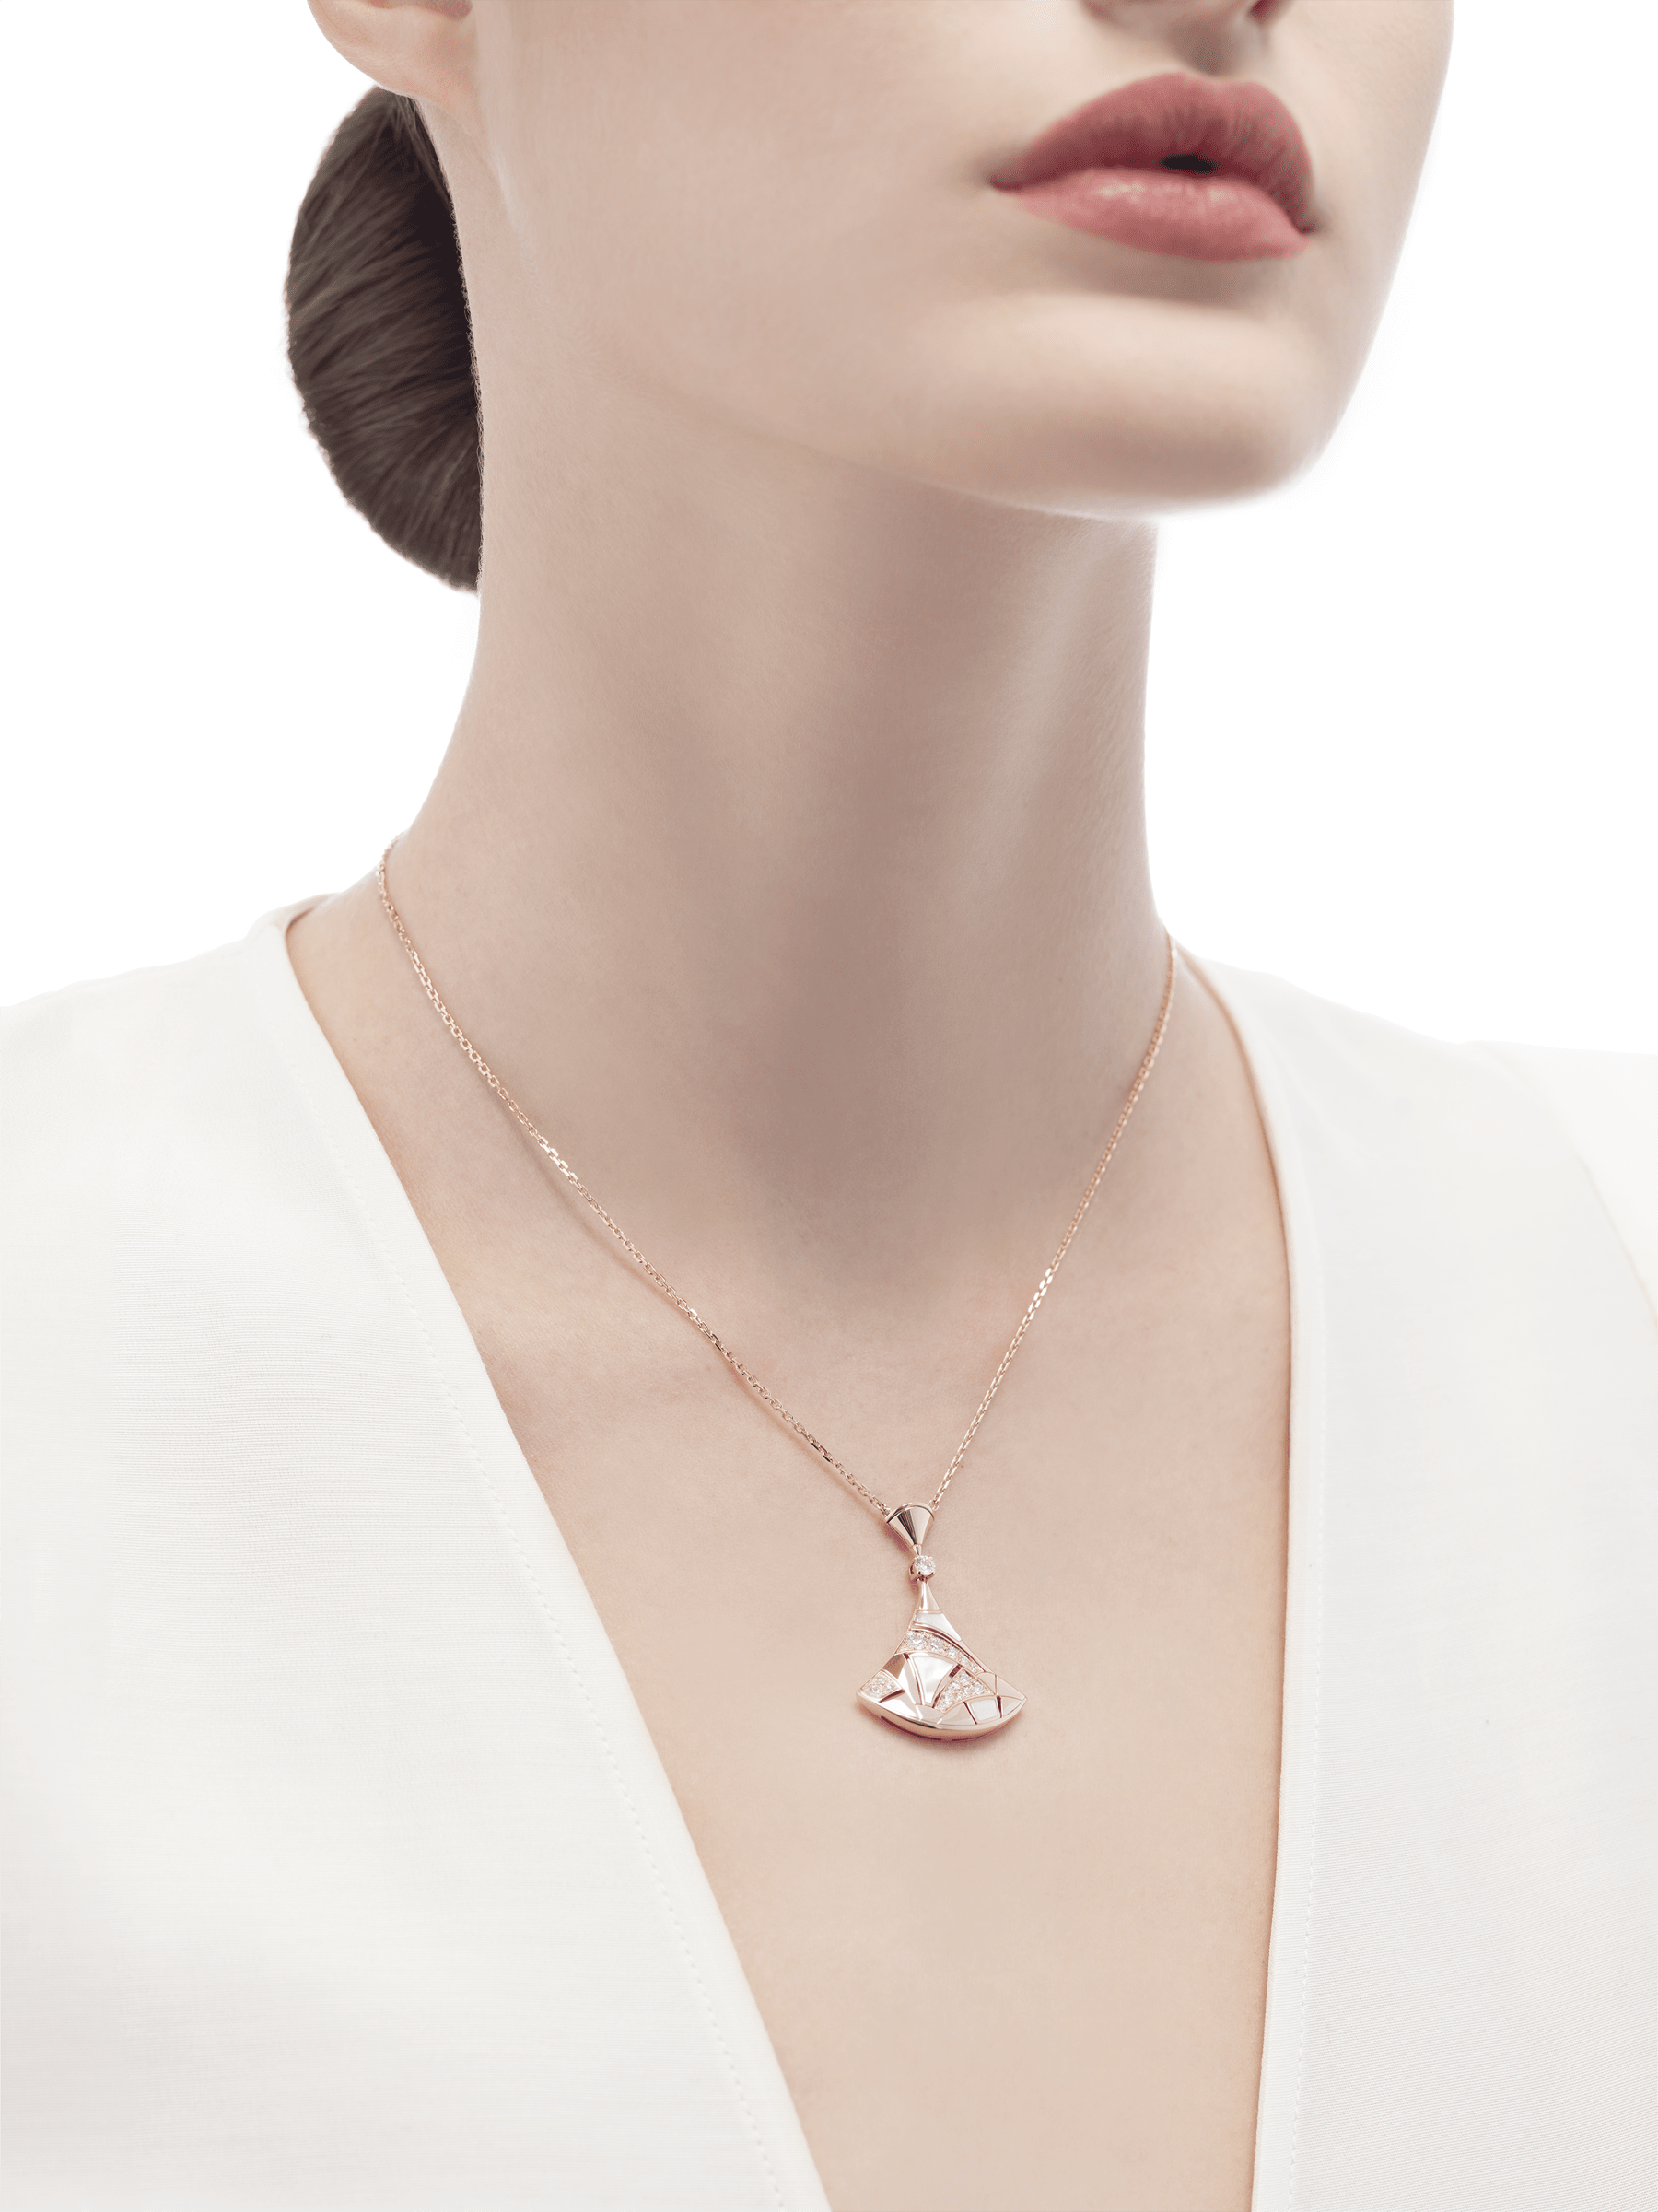 DIVAS' DREAM necklace in 18 kt rose gold with pendant set with mother-of-pearl elements, one diamond and pavé diamonds. 350065 image 4